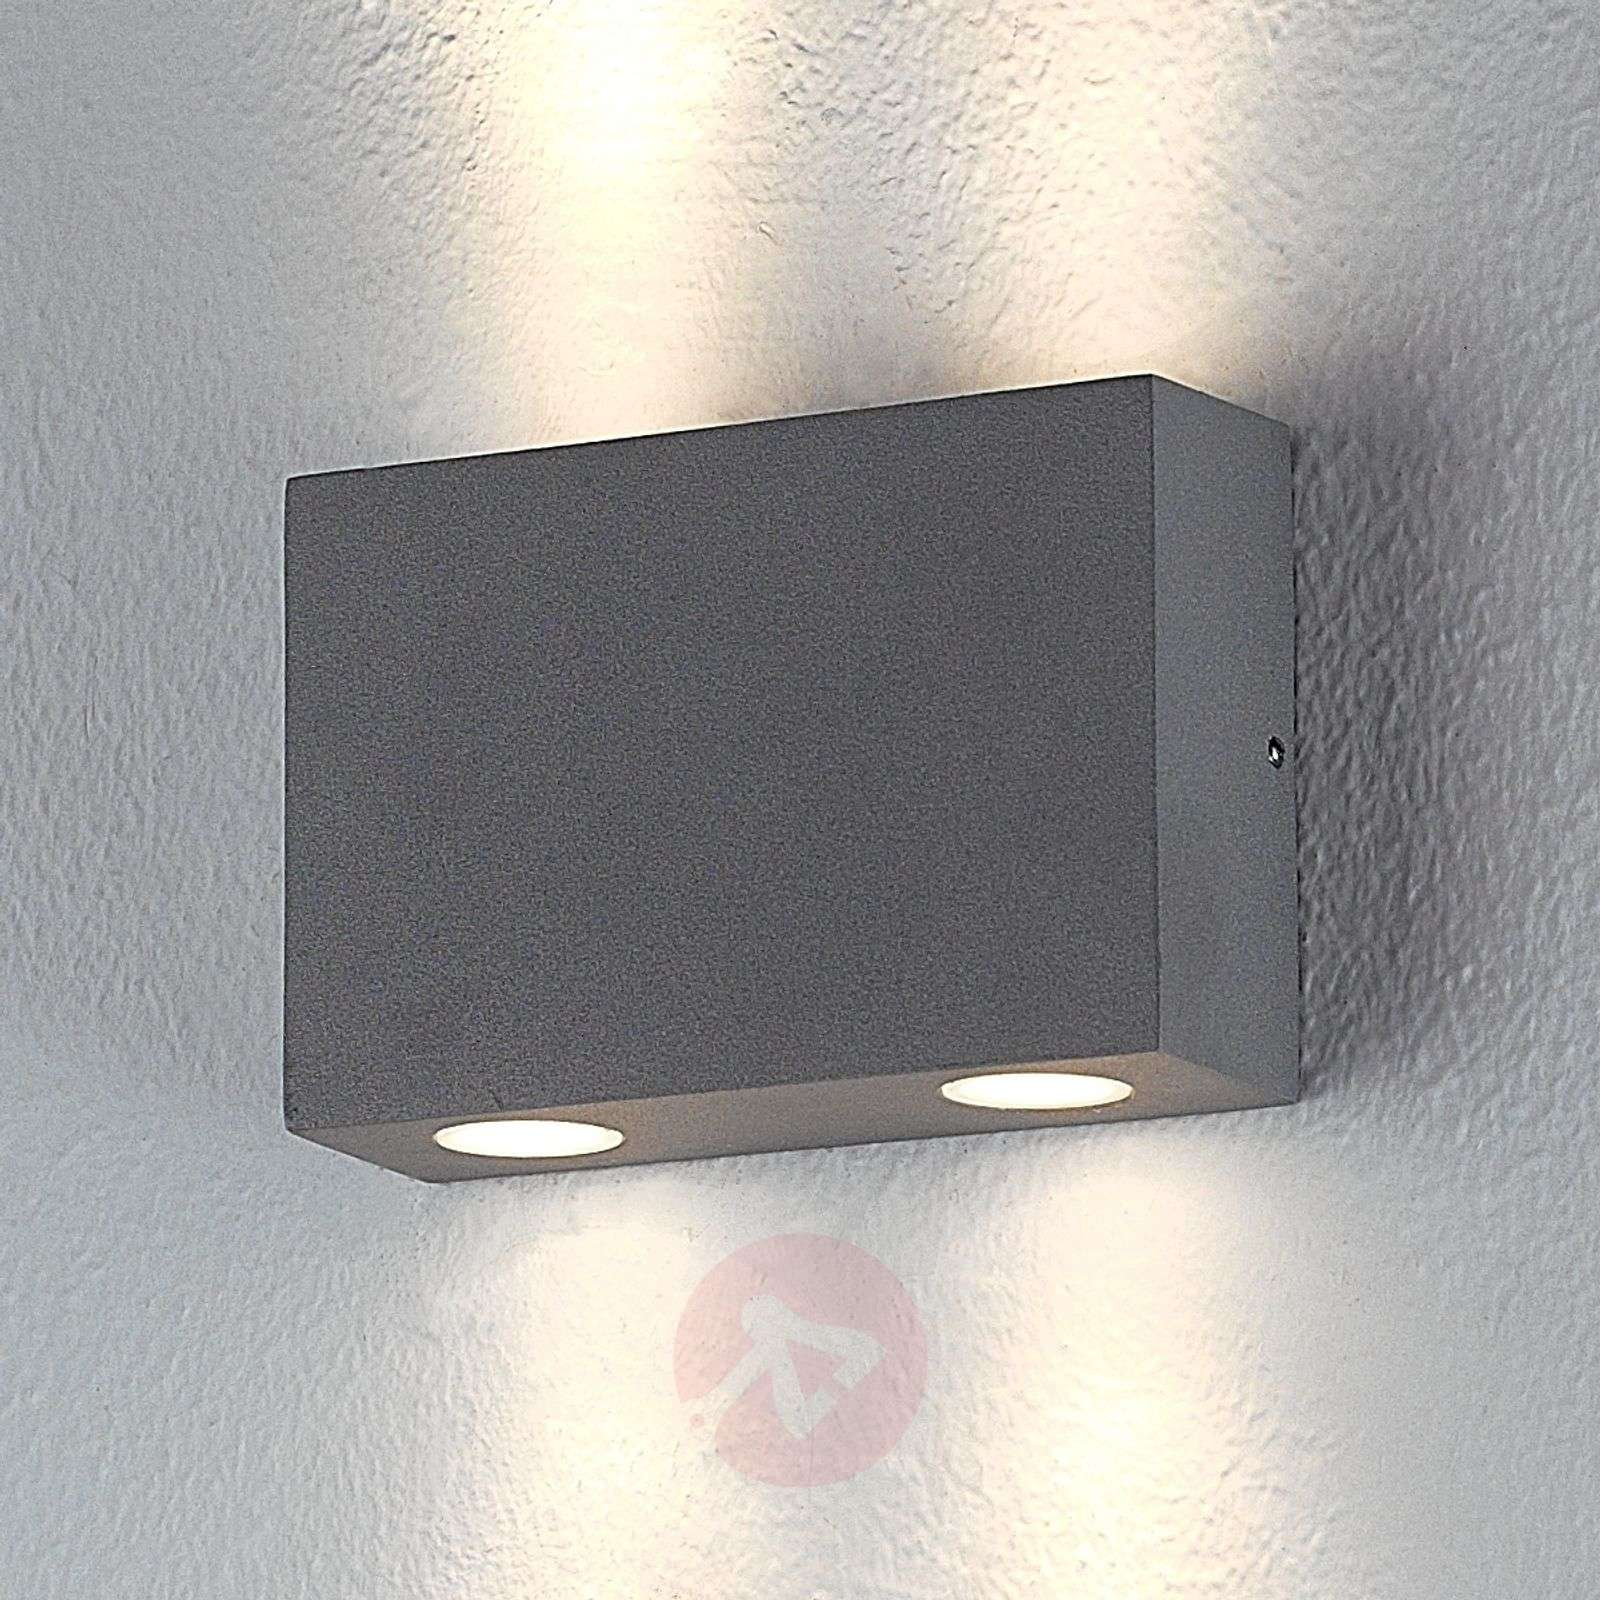 Wall Light Switch Remote Control : Rectangular outdoor wall light Henor with 4 LEDs Lights.co.uk